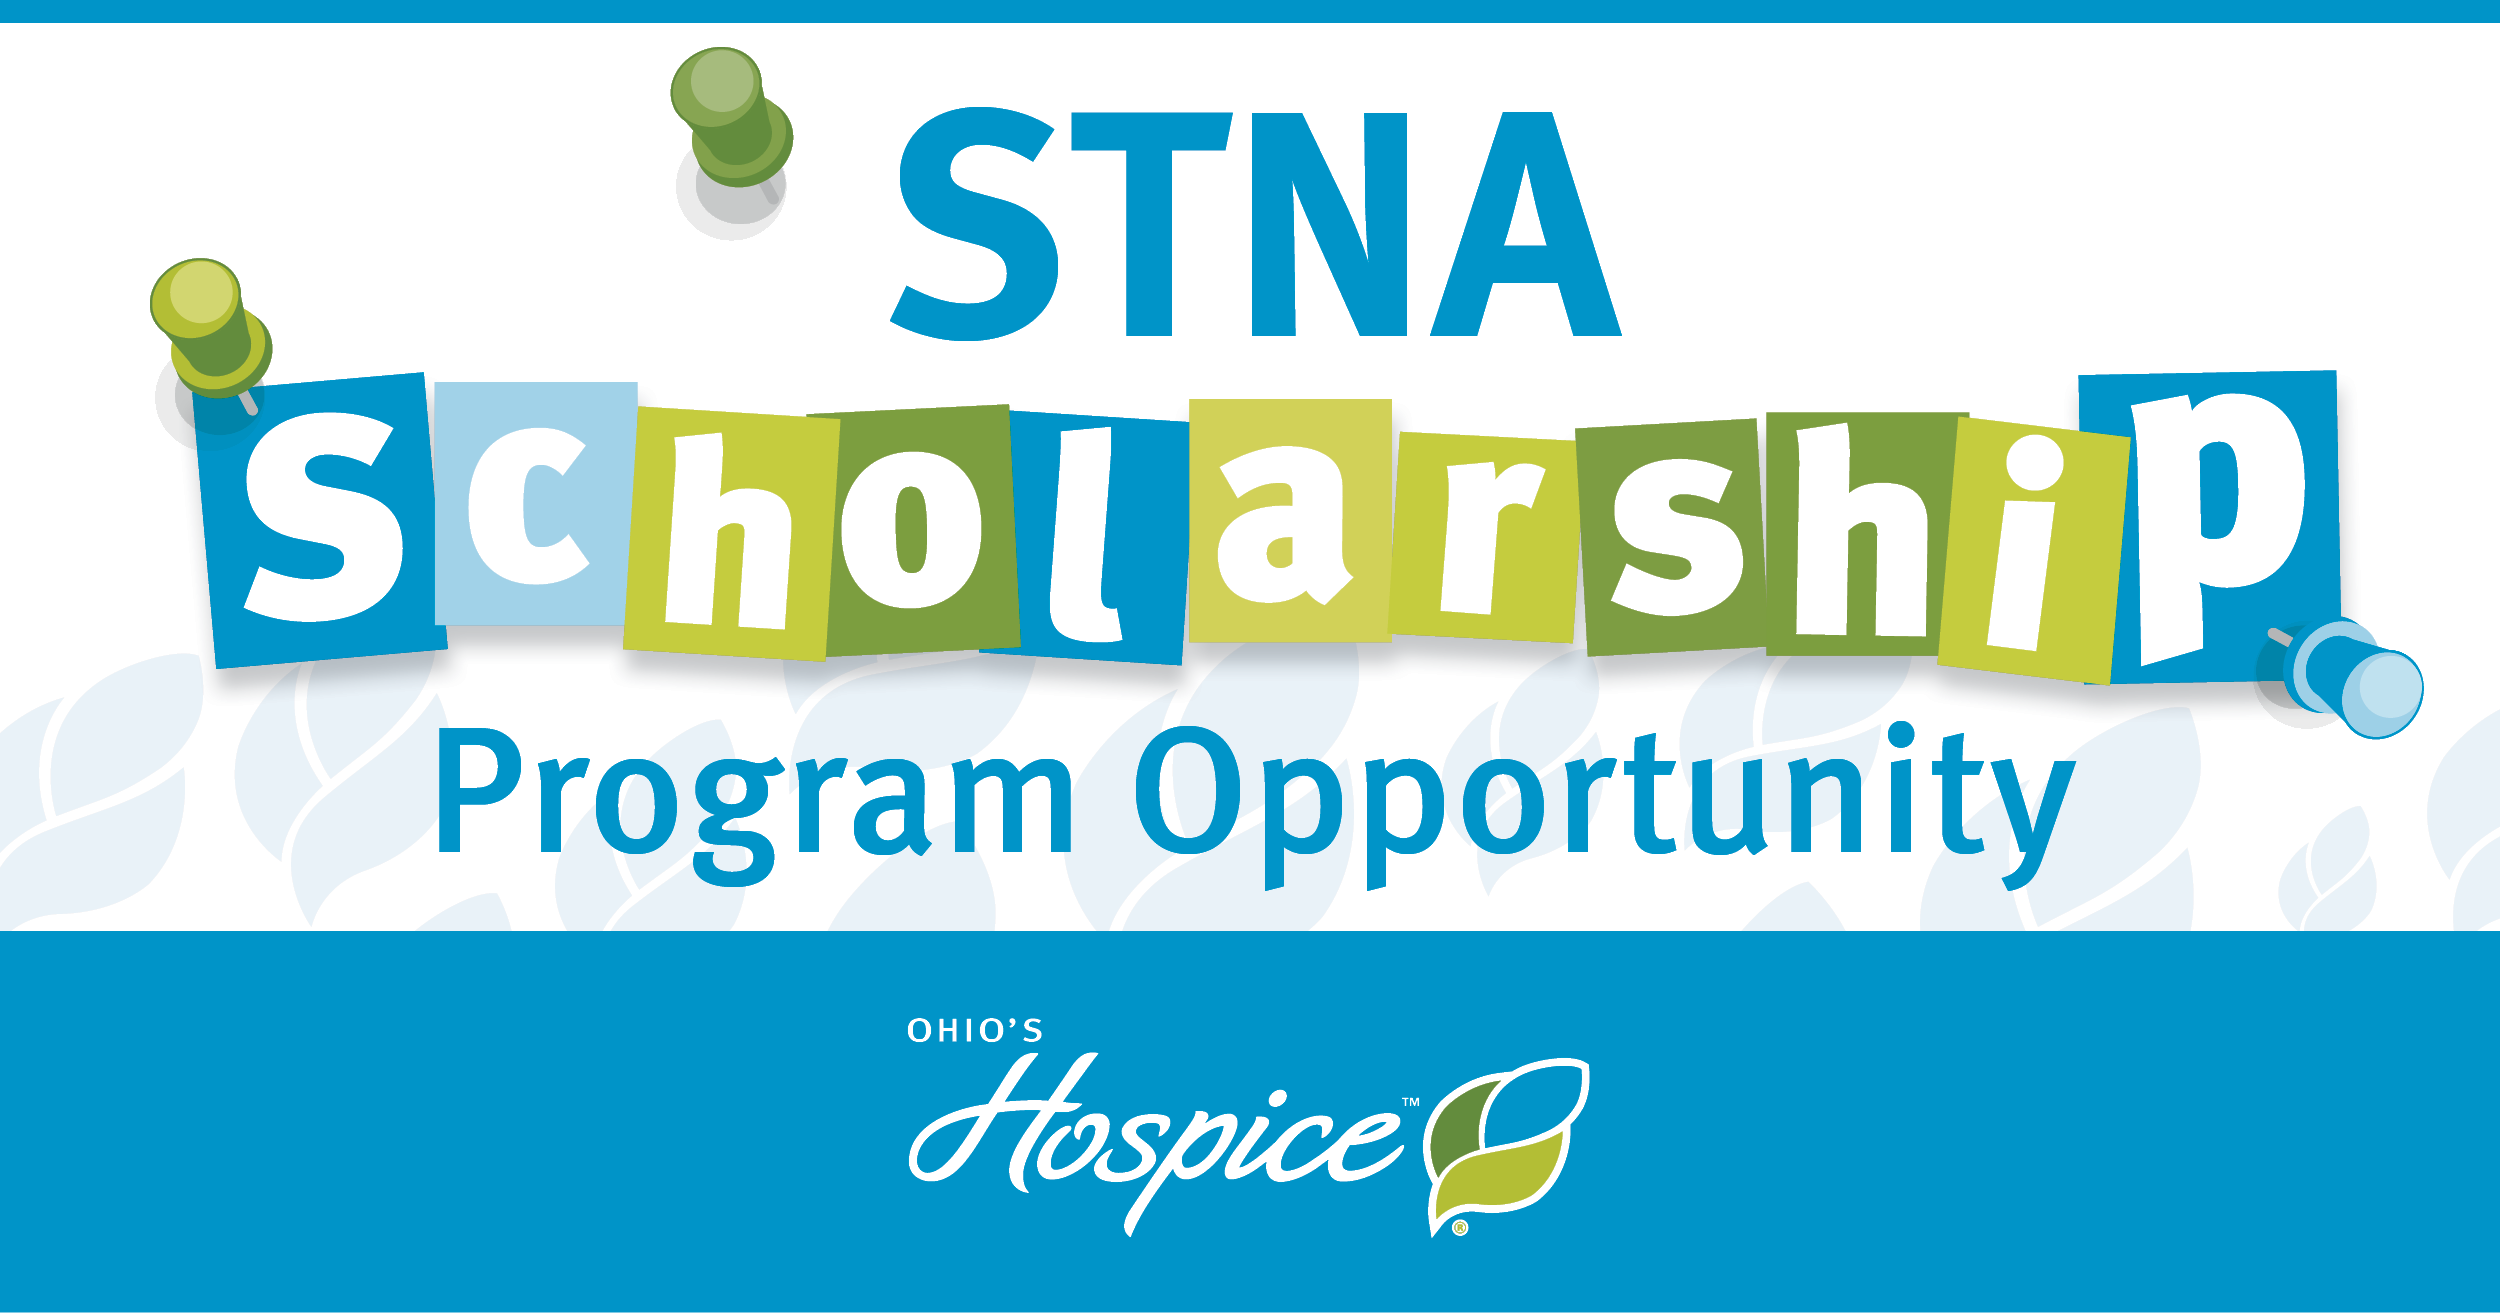 Ohio's Hospice Offers STNA Scholarship Program